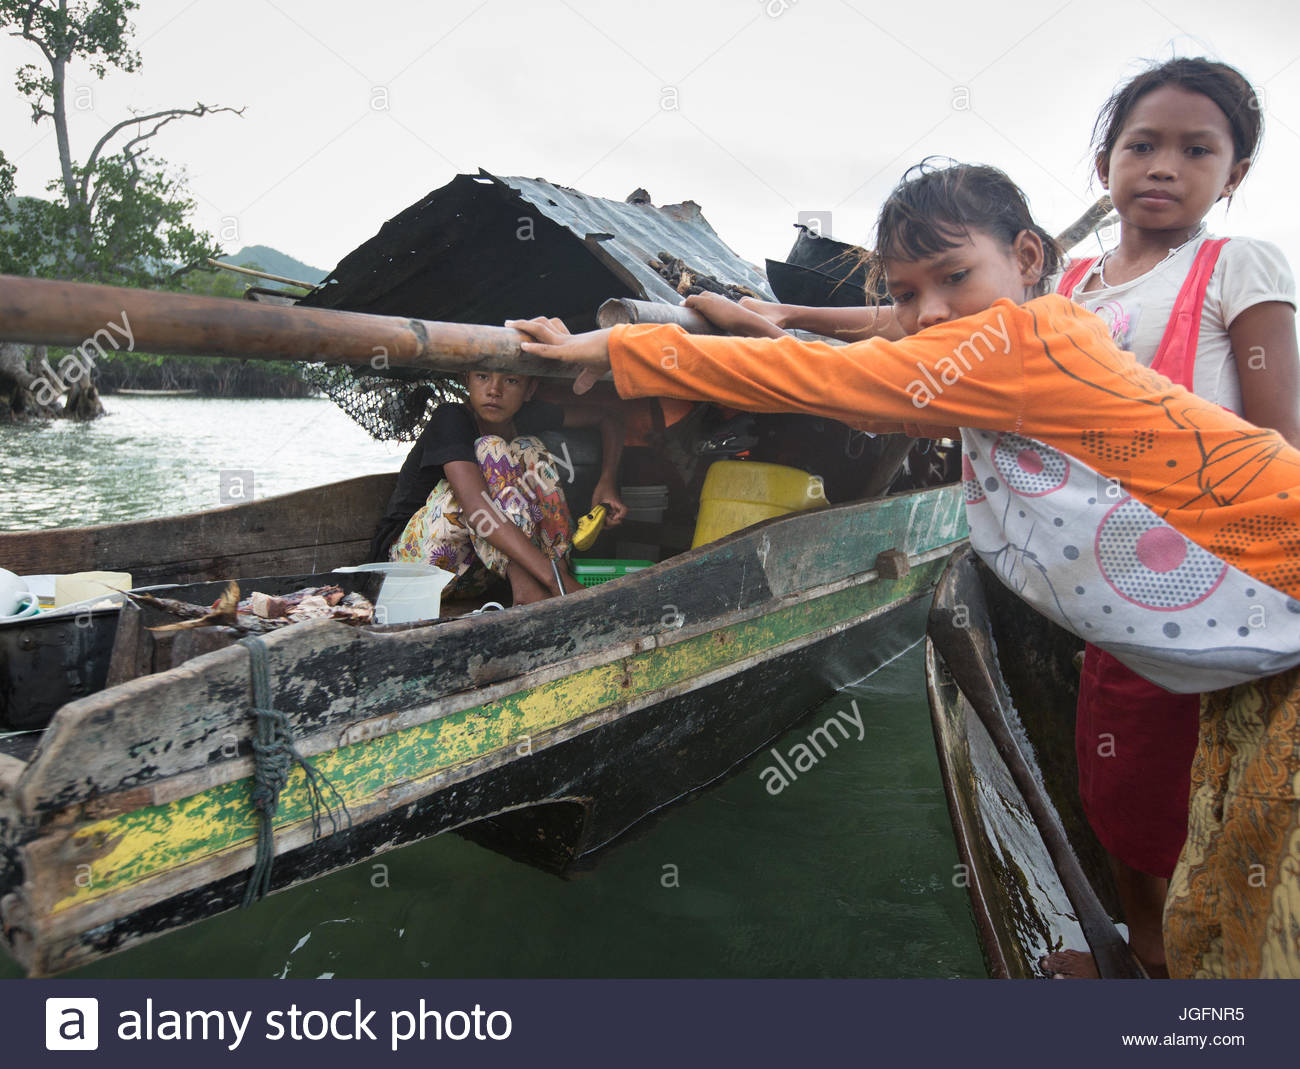 A Bajau family, who lives all year round on a Lepa, a traditional houseboat. - Stock Image